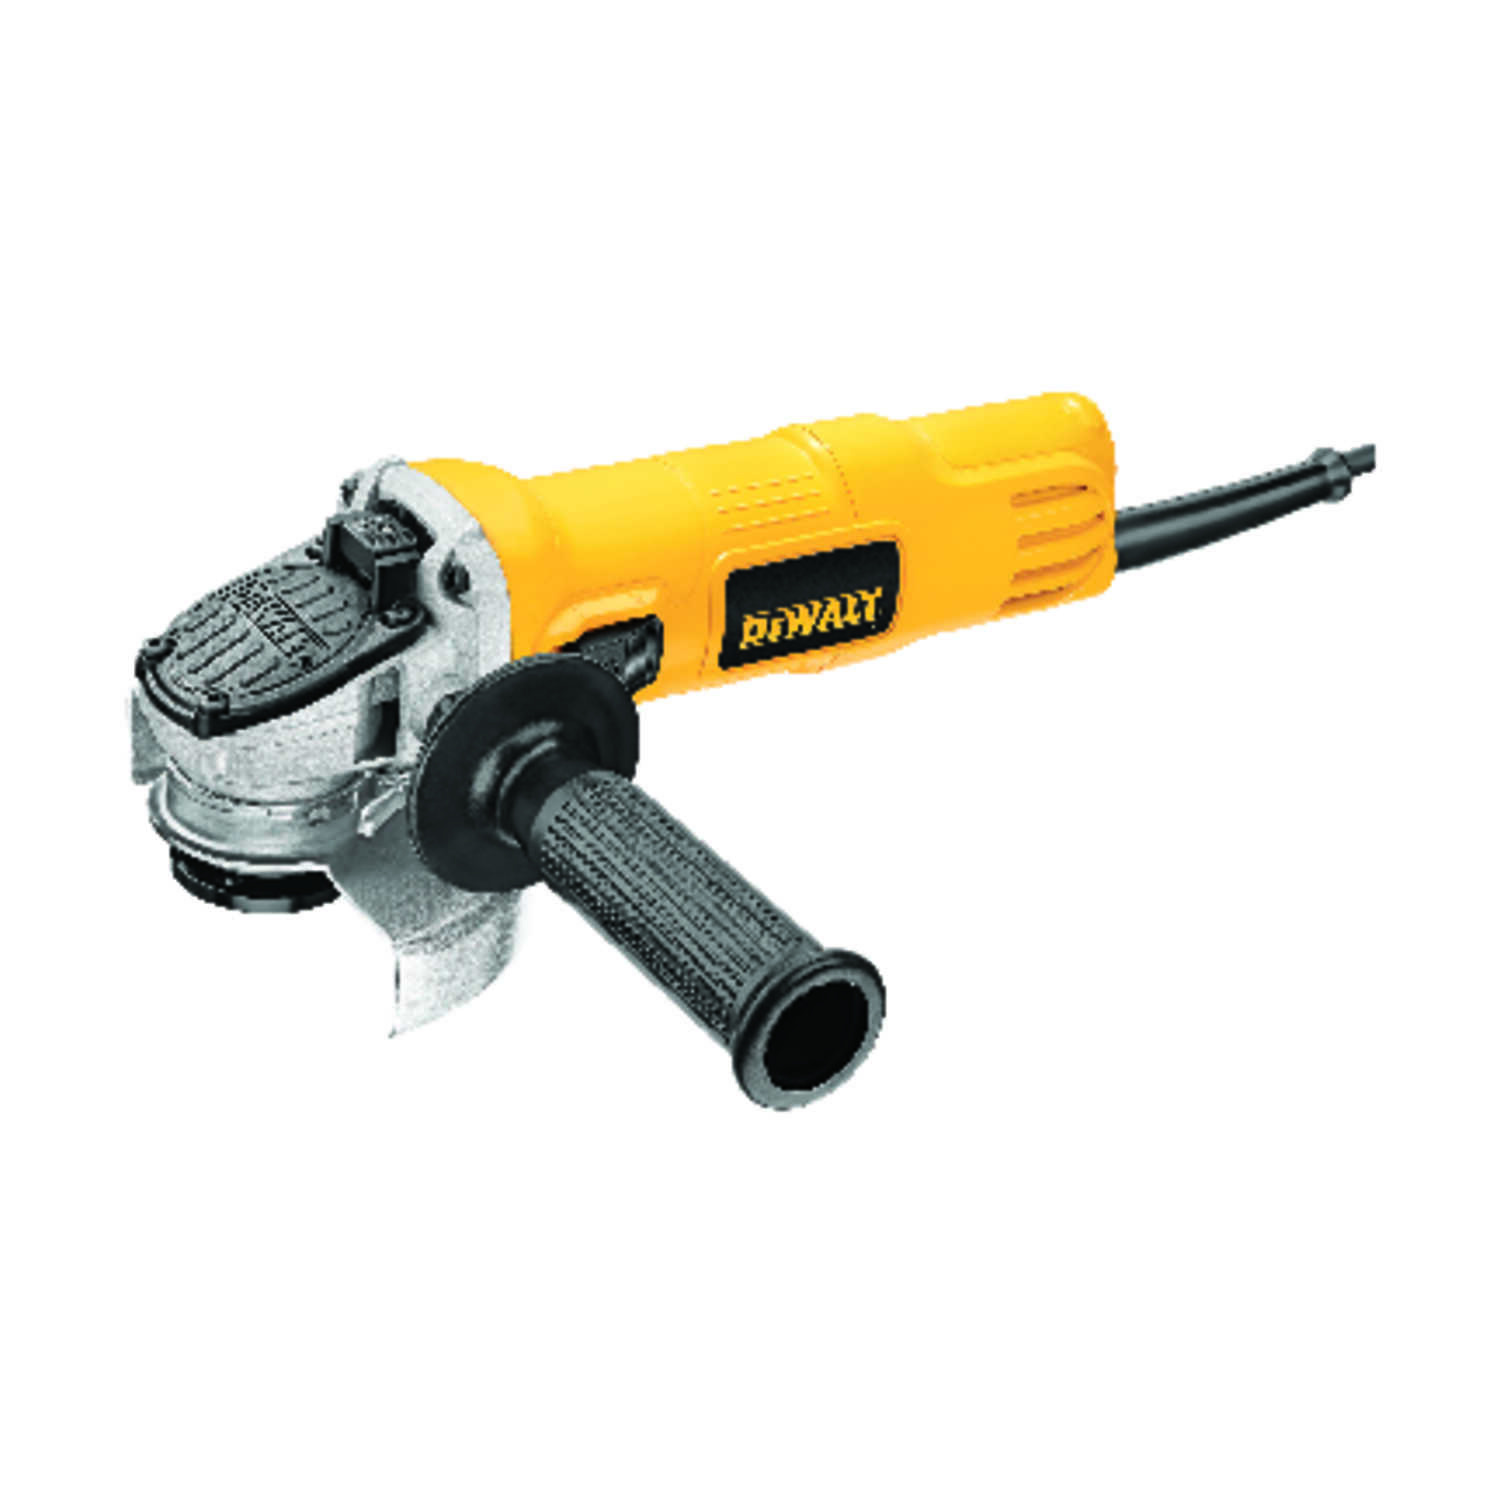 DeWalt  4-1/2 in.  Corded  Small  Angle Grinder  7 amps 12000 rpm